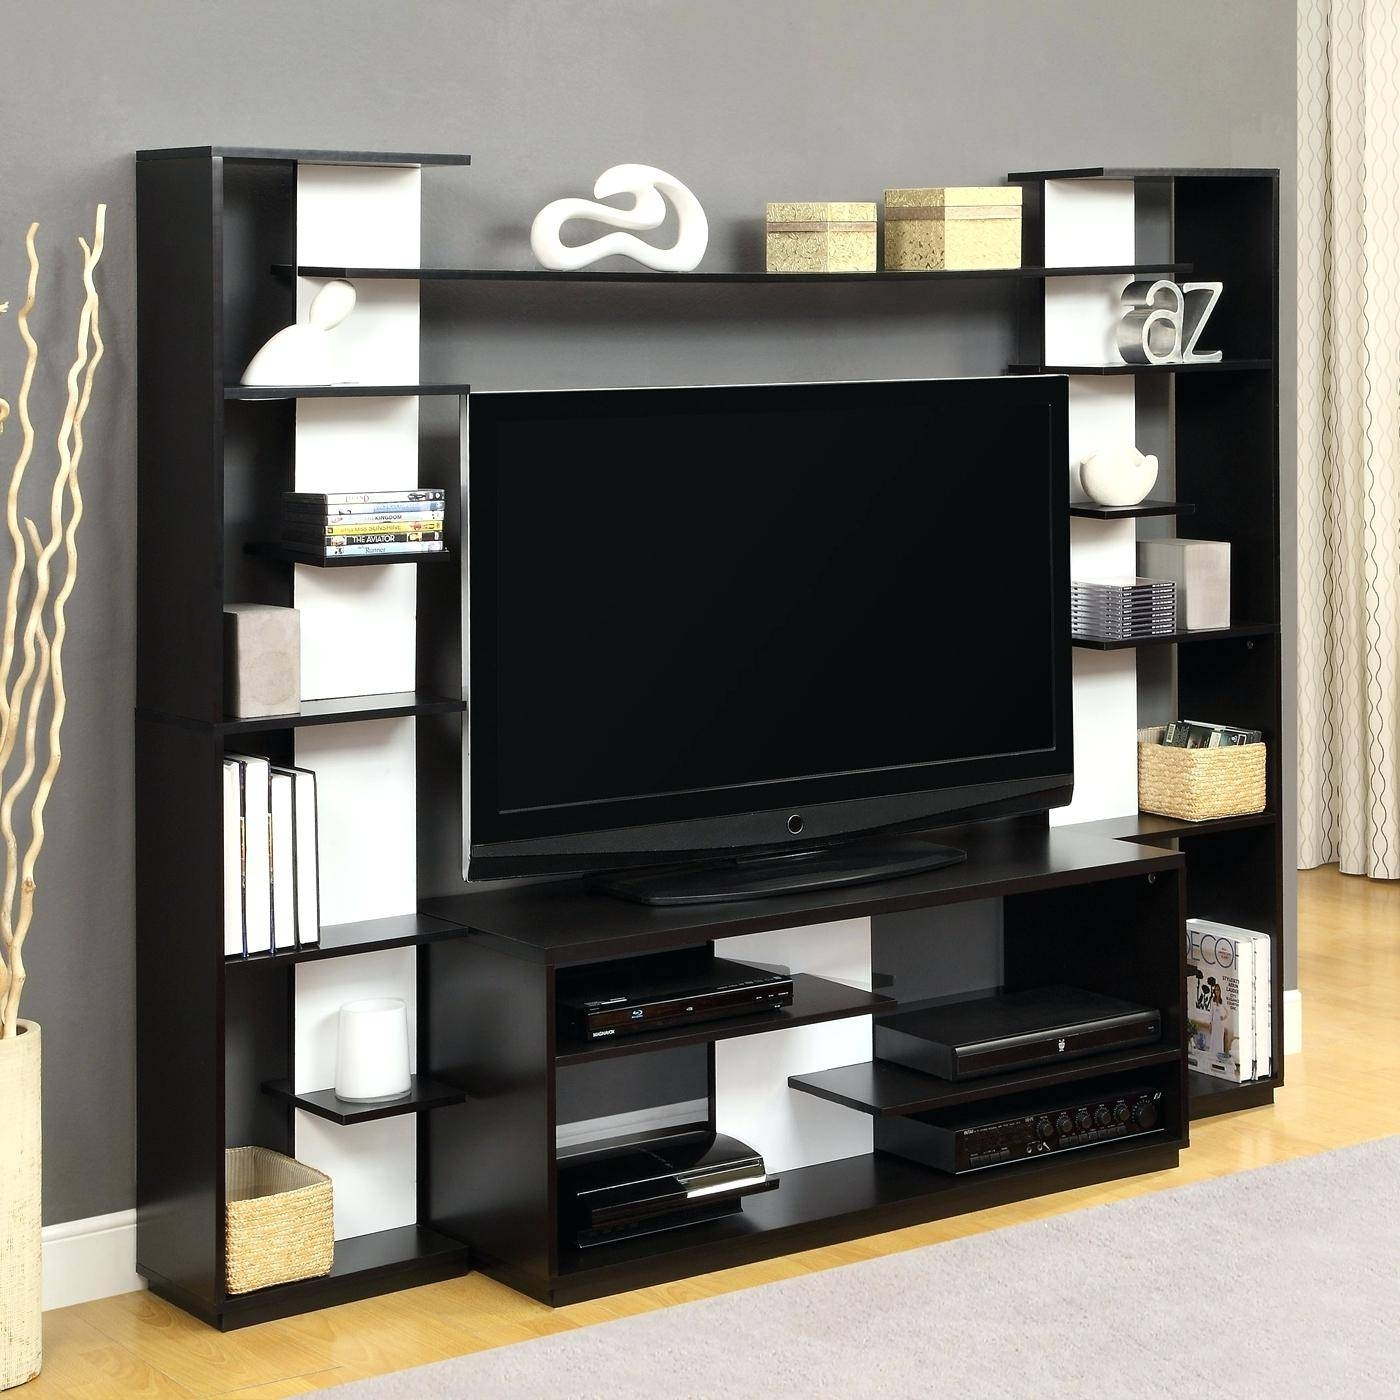 Tv Stand: Trendy Tv Stand Entertainment Center Inspirations inside Bedford Tv Stands (Image 13 of 15)